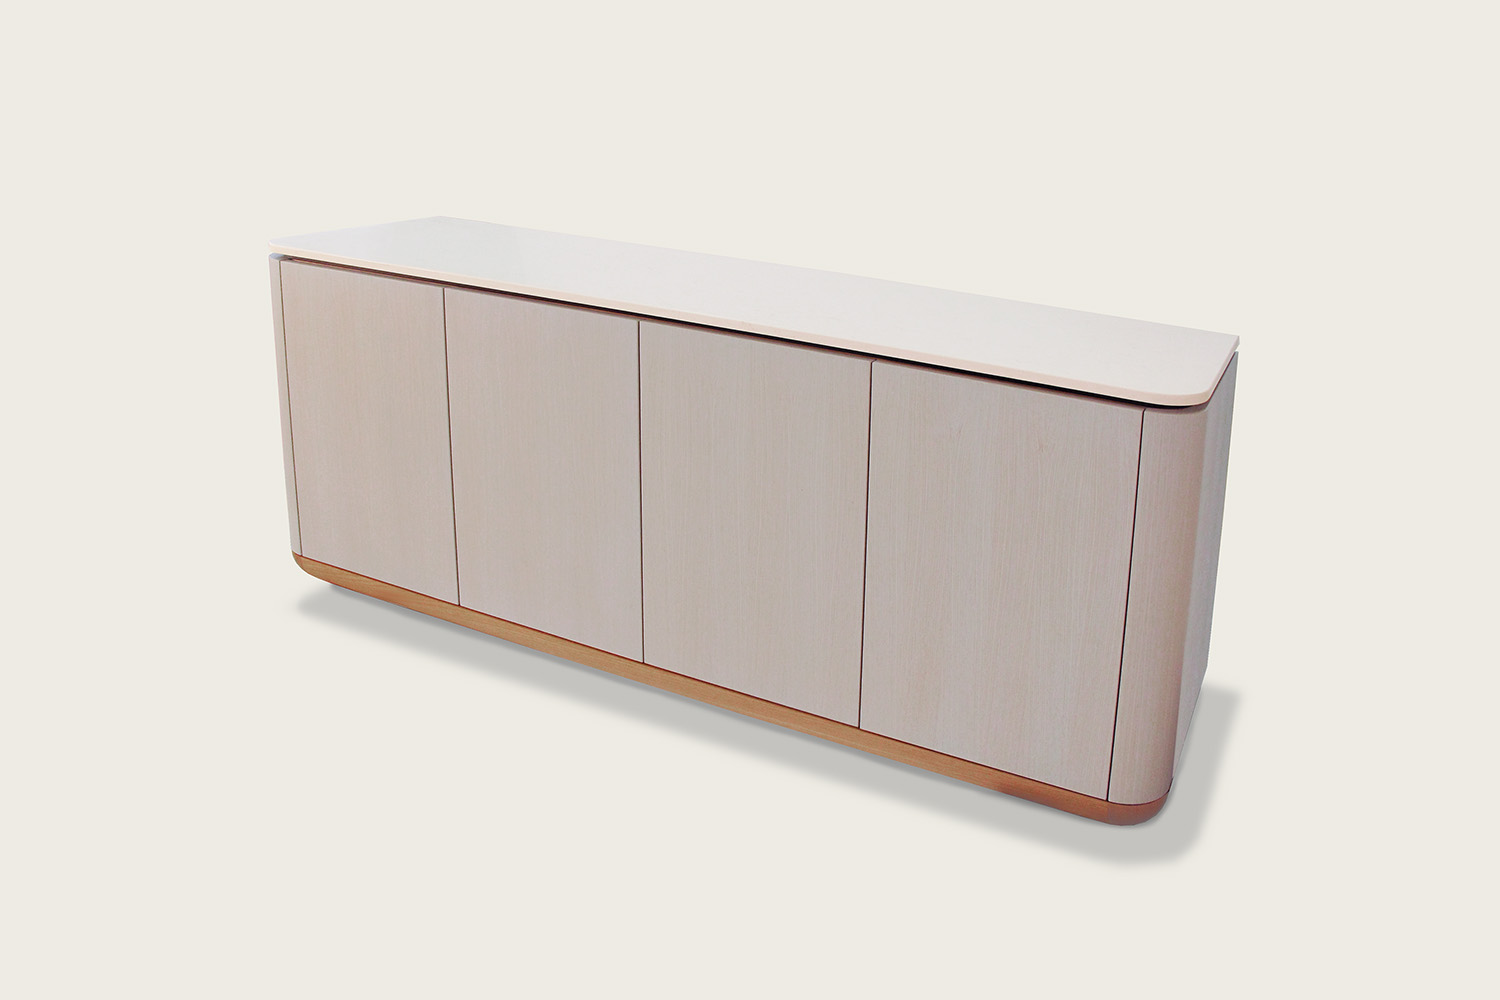 Contour 4-Door Credenza in oak with quartz top - Speke Klein